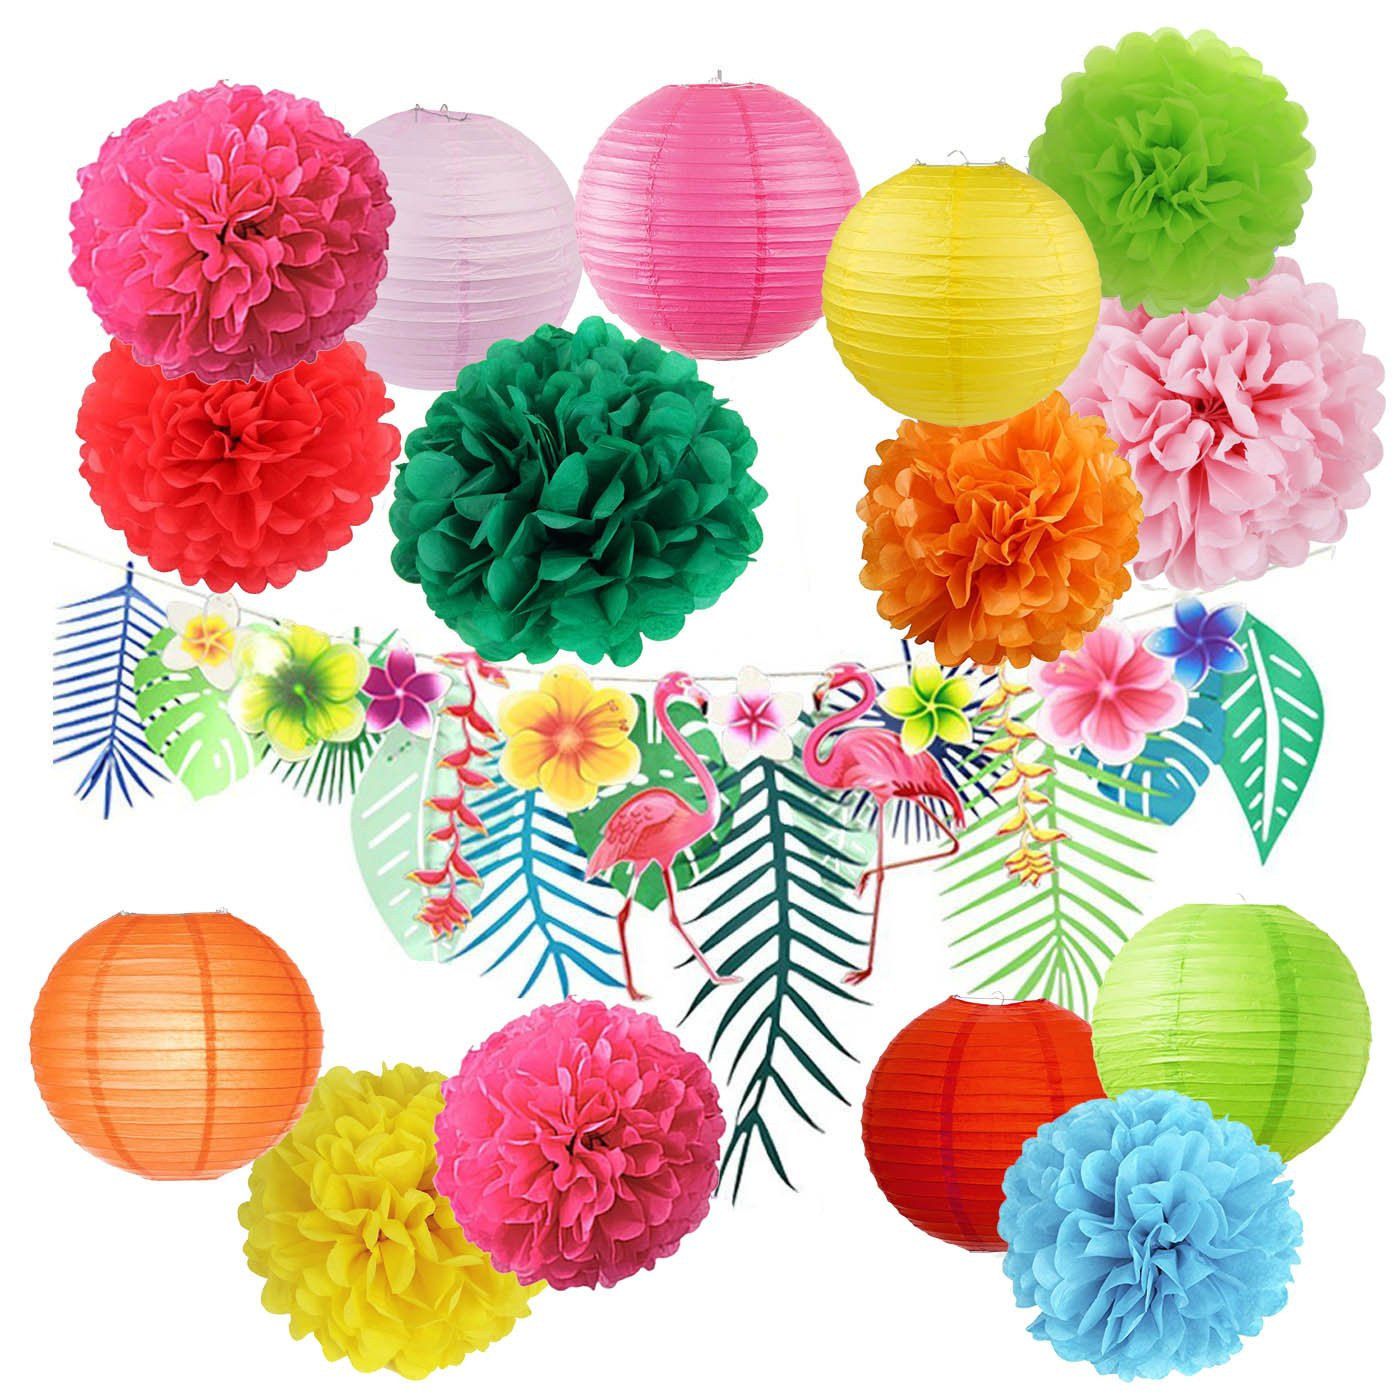 Hawaiian Luau Party Decorations Tropical Tiki Hibiscus Flowers and Flamingos Banner Large Artificial Tropical Leaves Banner Garland Tissue Paper Pom Poms Flowers Paper Lanter For Summer Party Supplies by Sorive